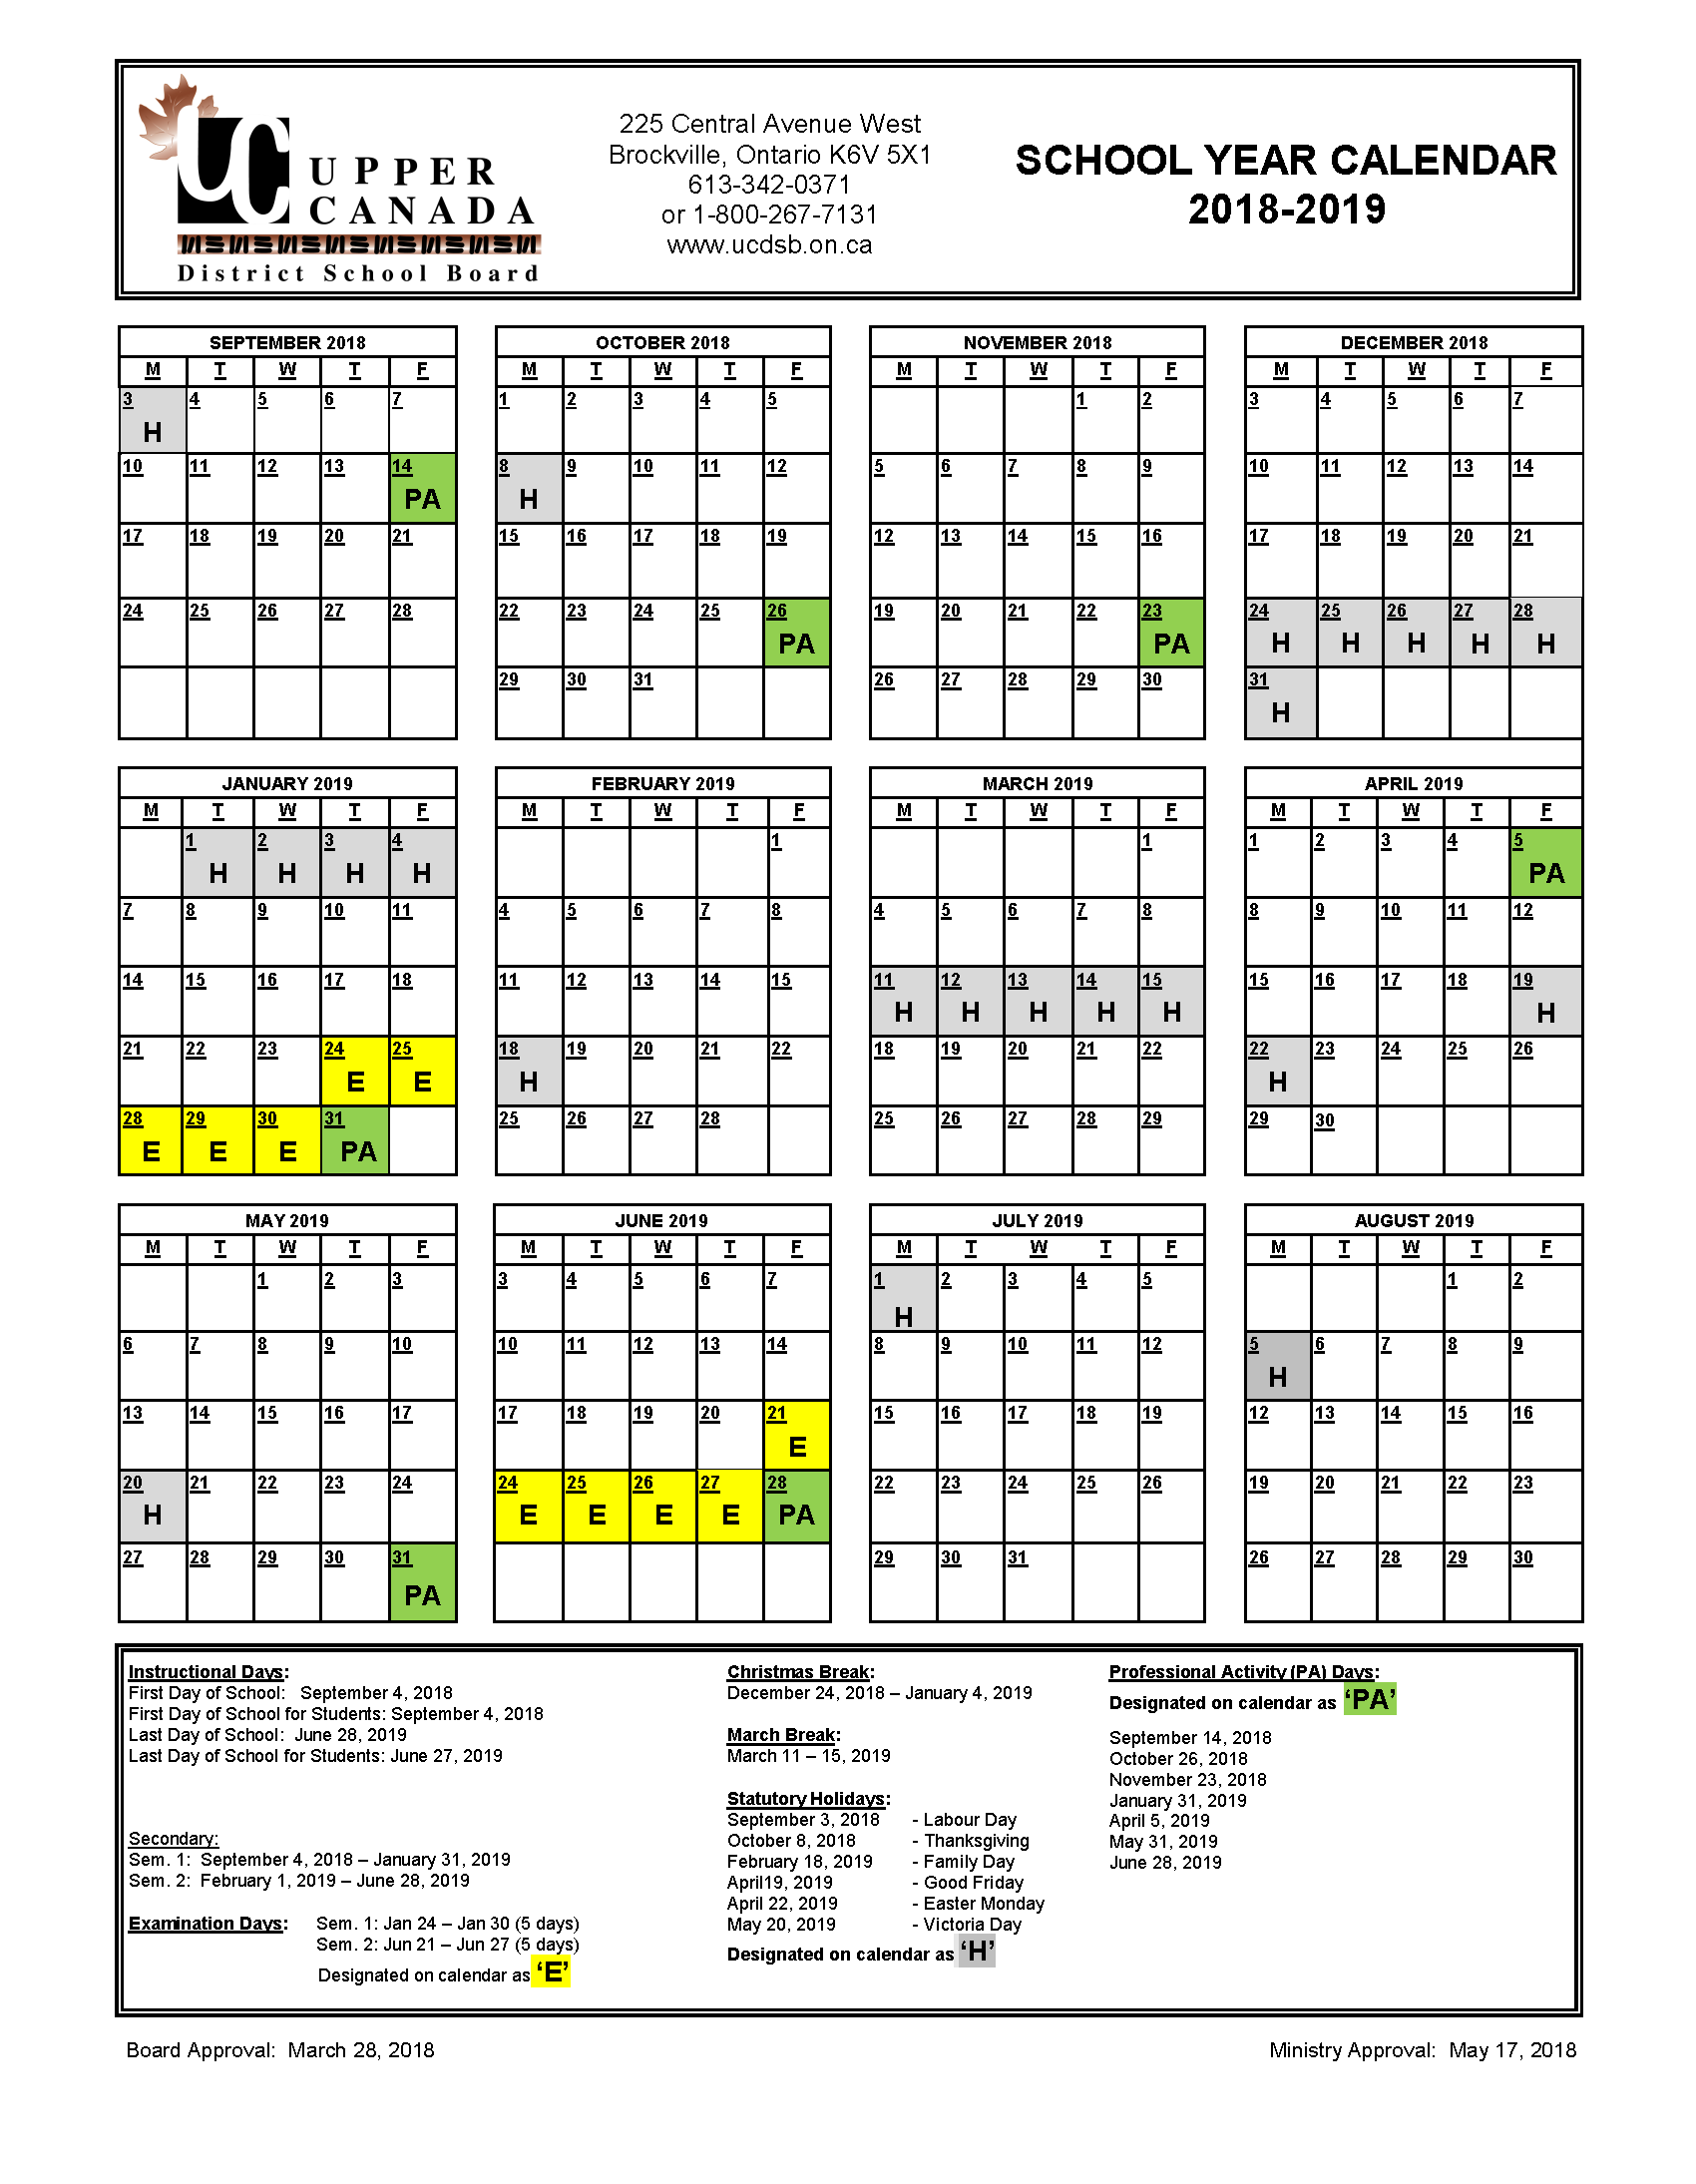 Year Calendar 2018 And 2019 With School Upper Canada District Board